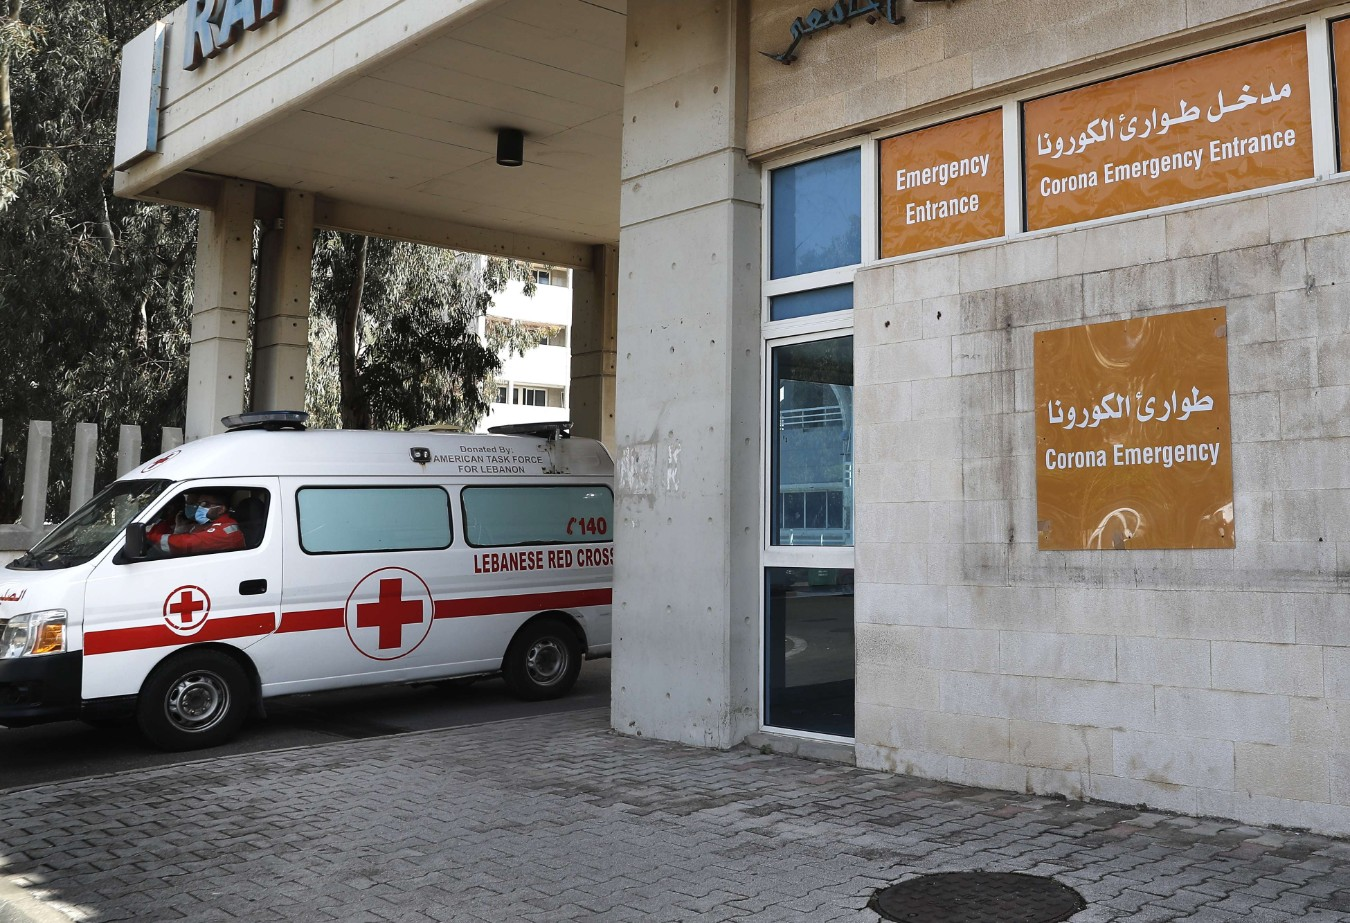 An ambulance of the Lebanese Red Cross leaves the emergency building of the government-run Rafik Hariri University Hospital, where most of the Lebanese coronavirus cases are treated, in Beirut, Lebanon,  March 11. (AP)